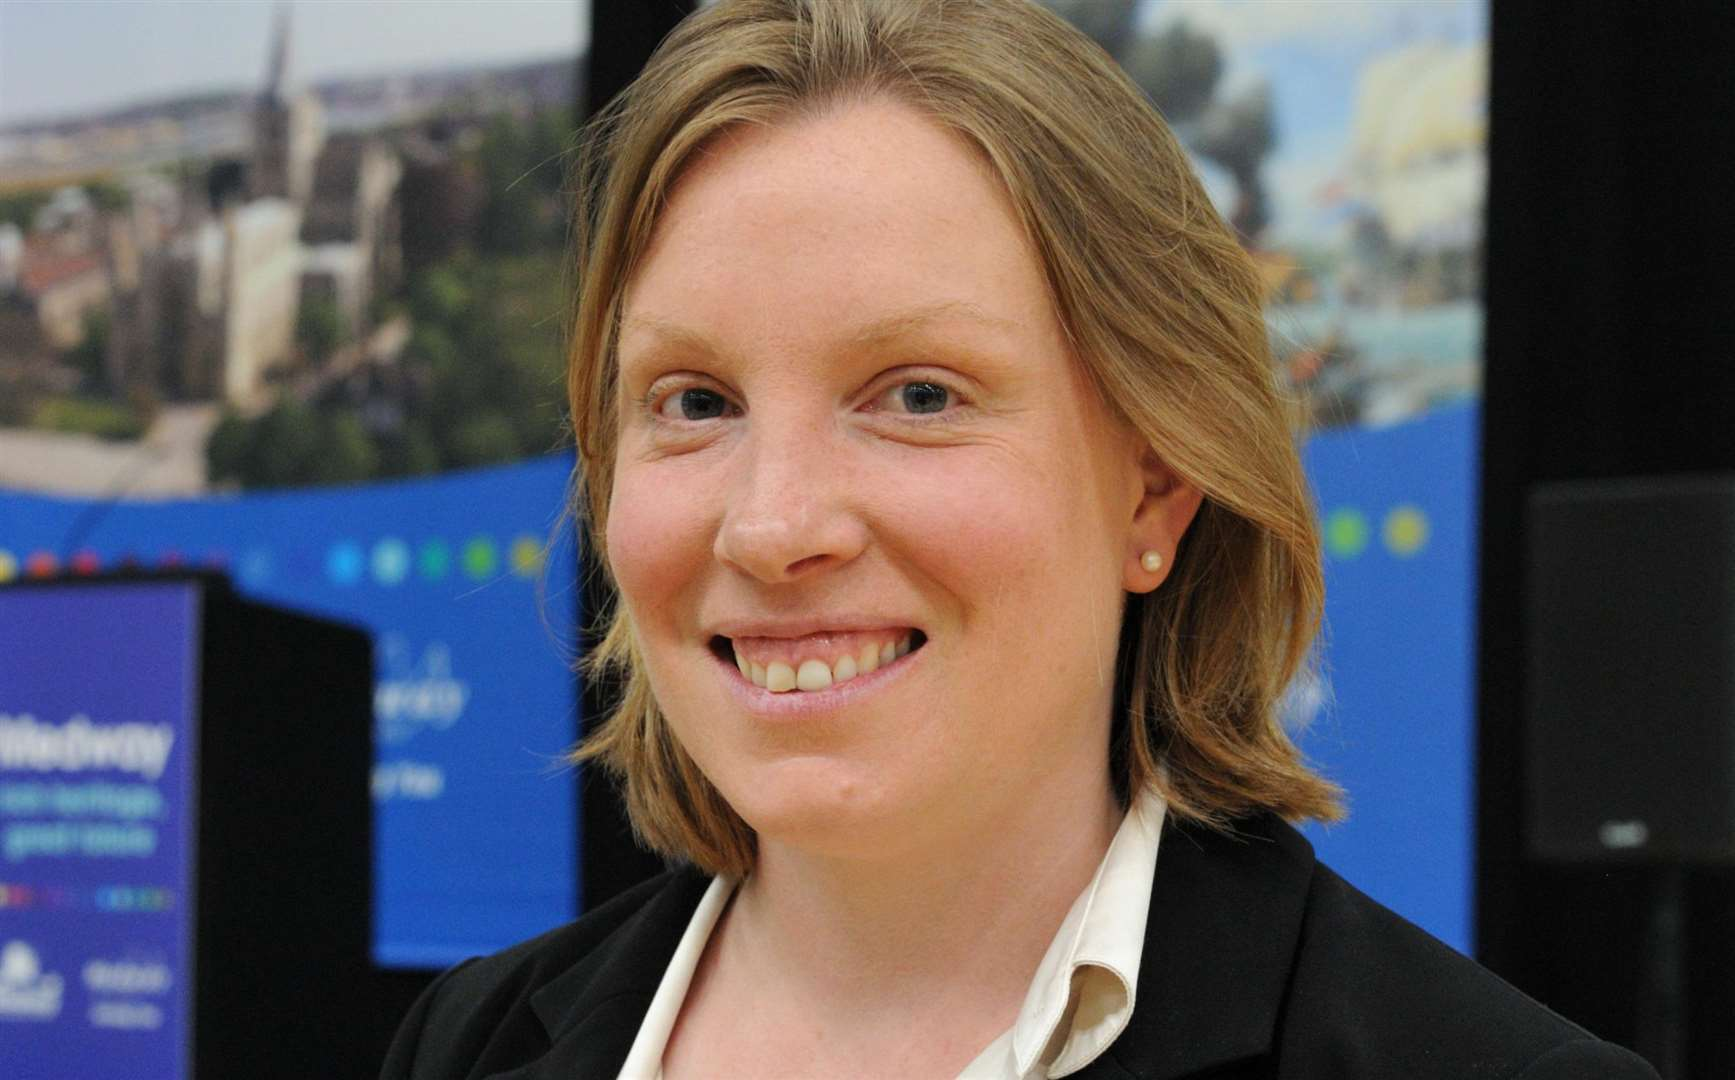 Minister for sport and civil society Tracey Crouch